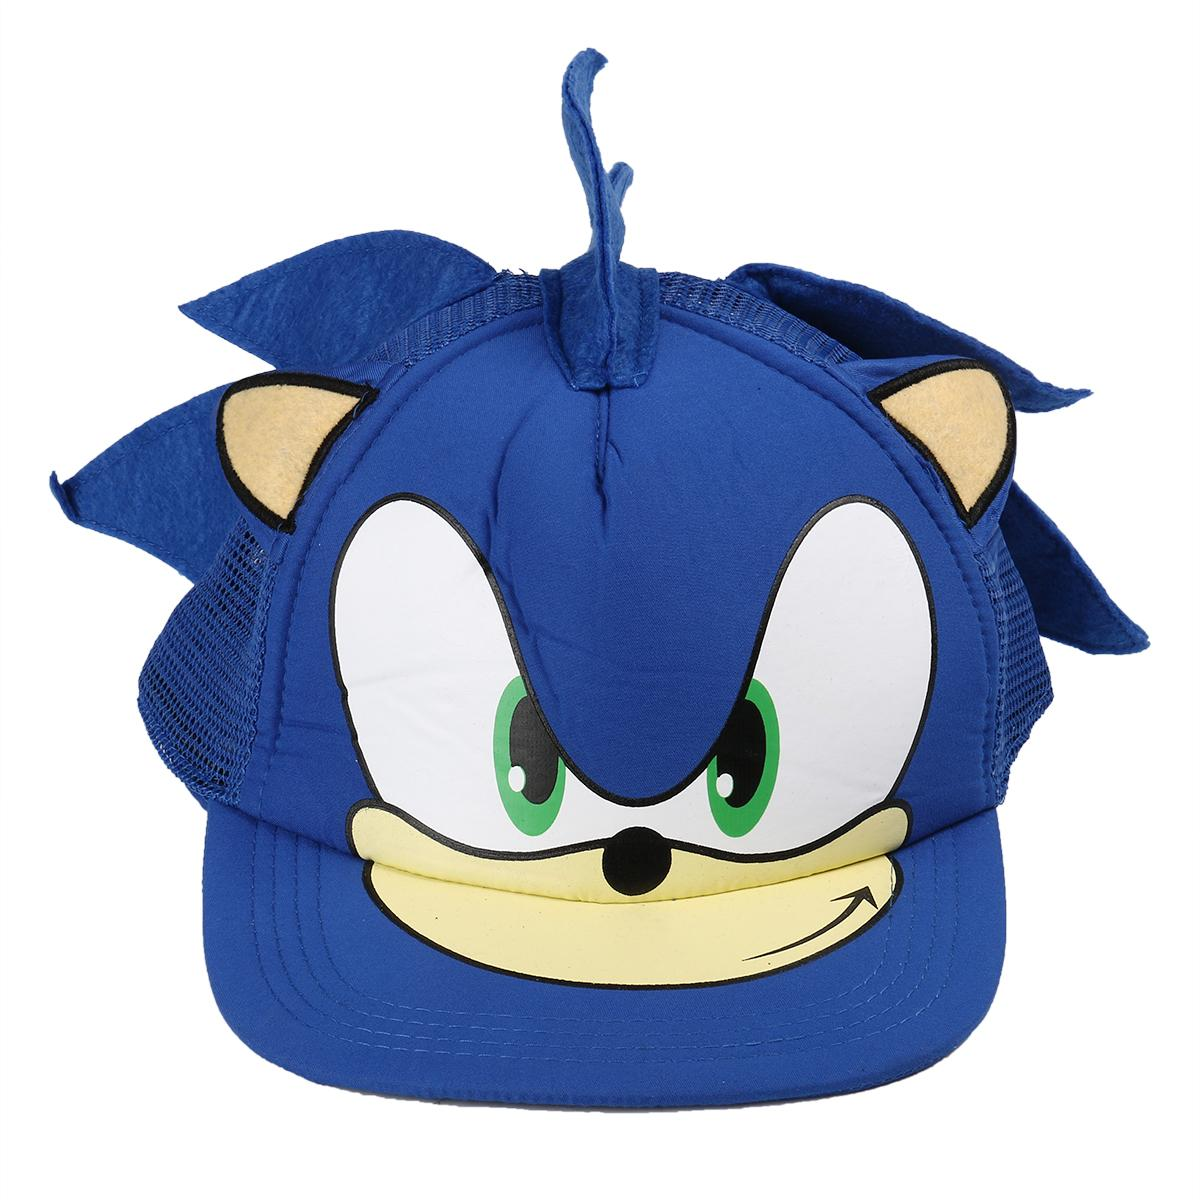 Cute Boy Sonic The Hedgehog Cartoon Youth Adjustable Baseball Hat Cap Blue For Boys Hot Selling Cap Kids Gift Cosplay Outdoor Christmas Decoration Outdoor Christmas Decorations From Jihua Company 7 07 Dhgate Com